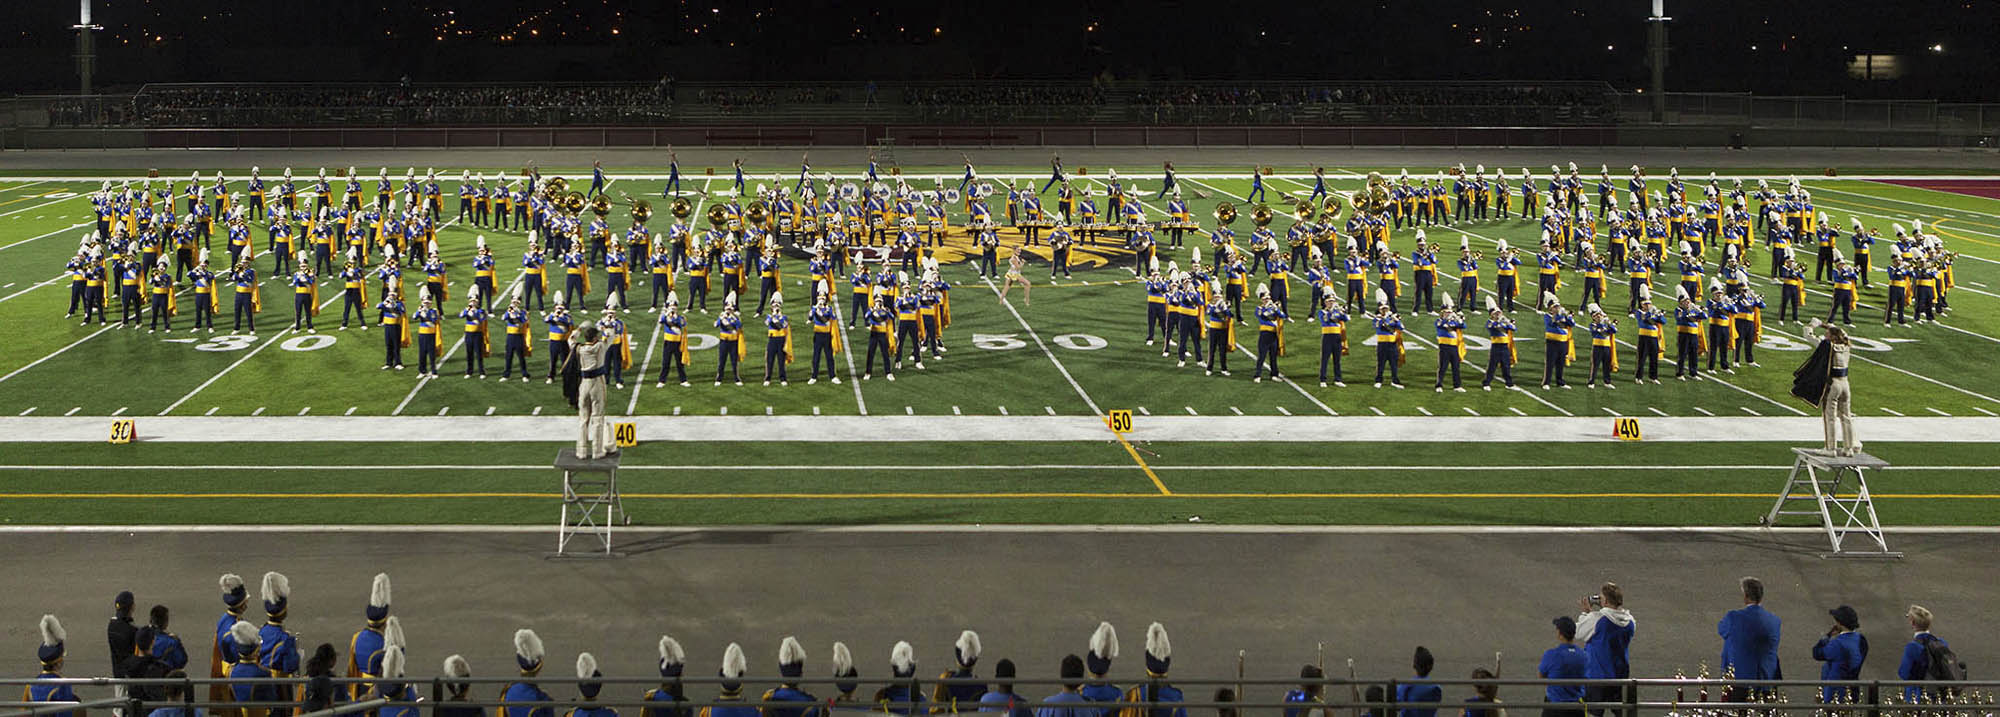 The 270-member UCLA Bruin Marching Band, performing during the 2016 Golden State Field Classic.